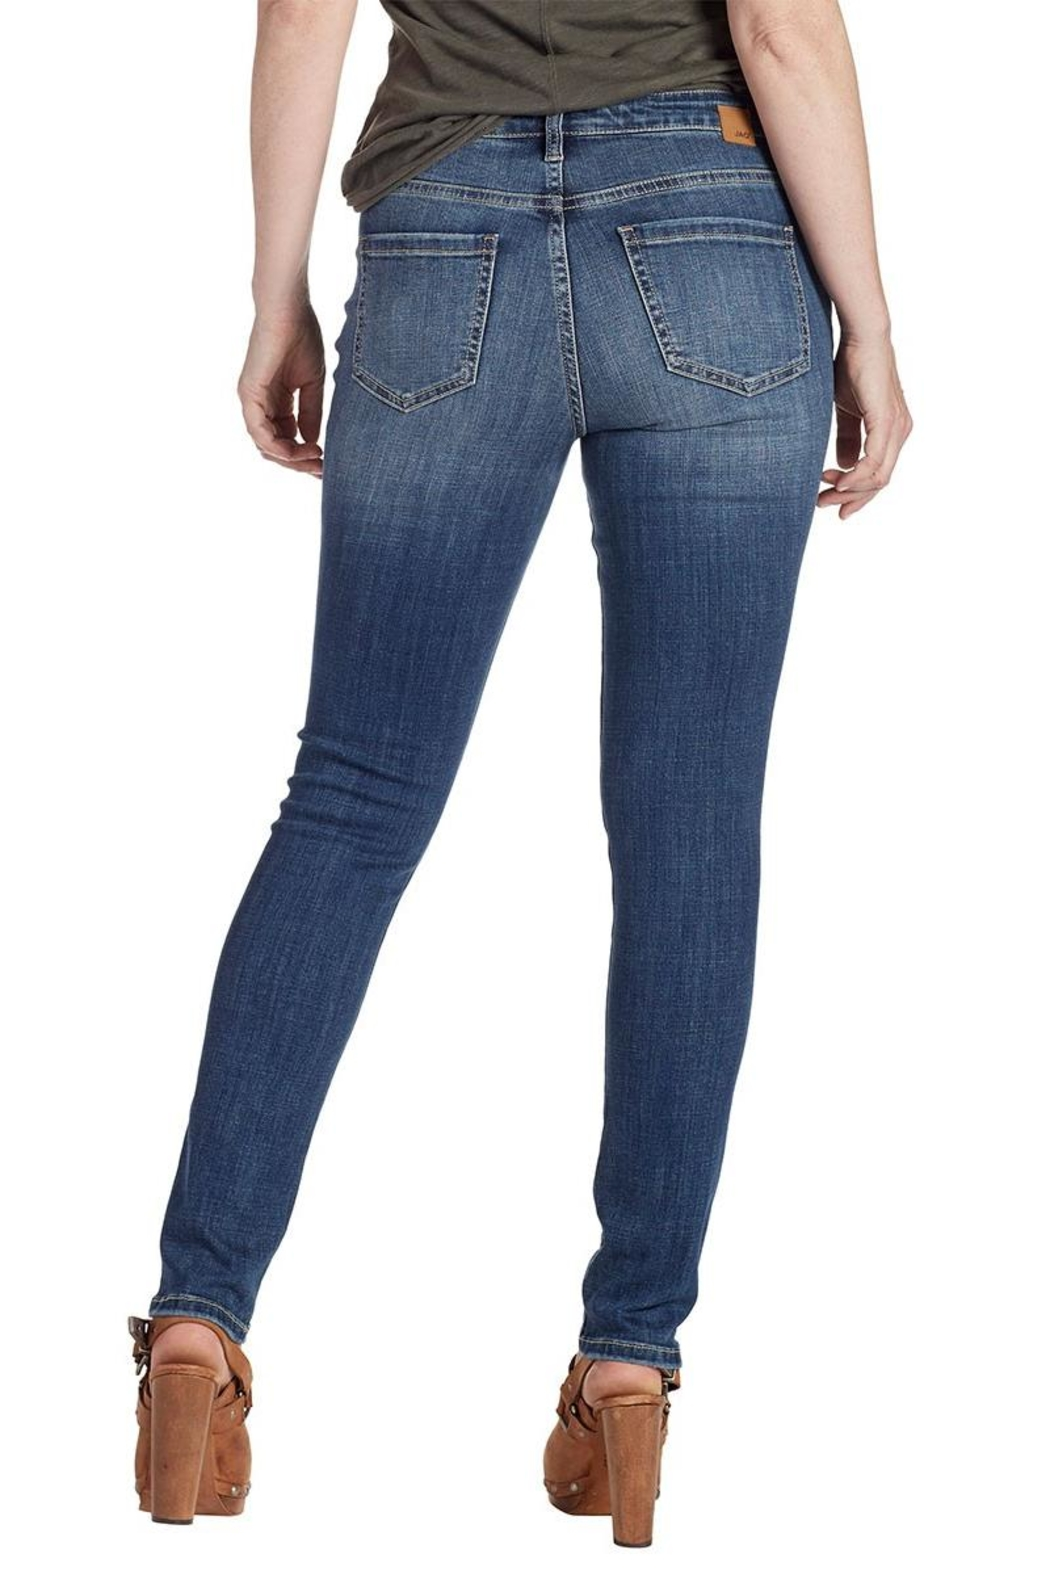 JAG Jeans Embroidered Skinny Jeans - Front Full Image